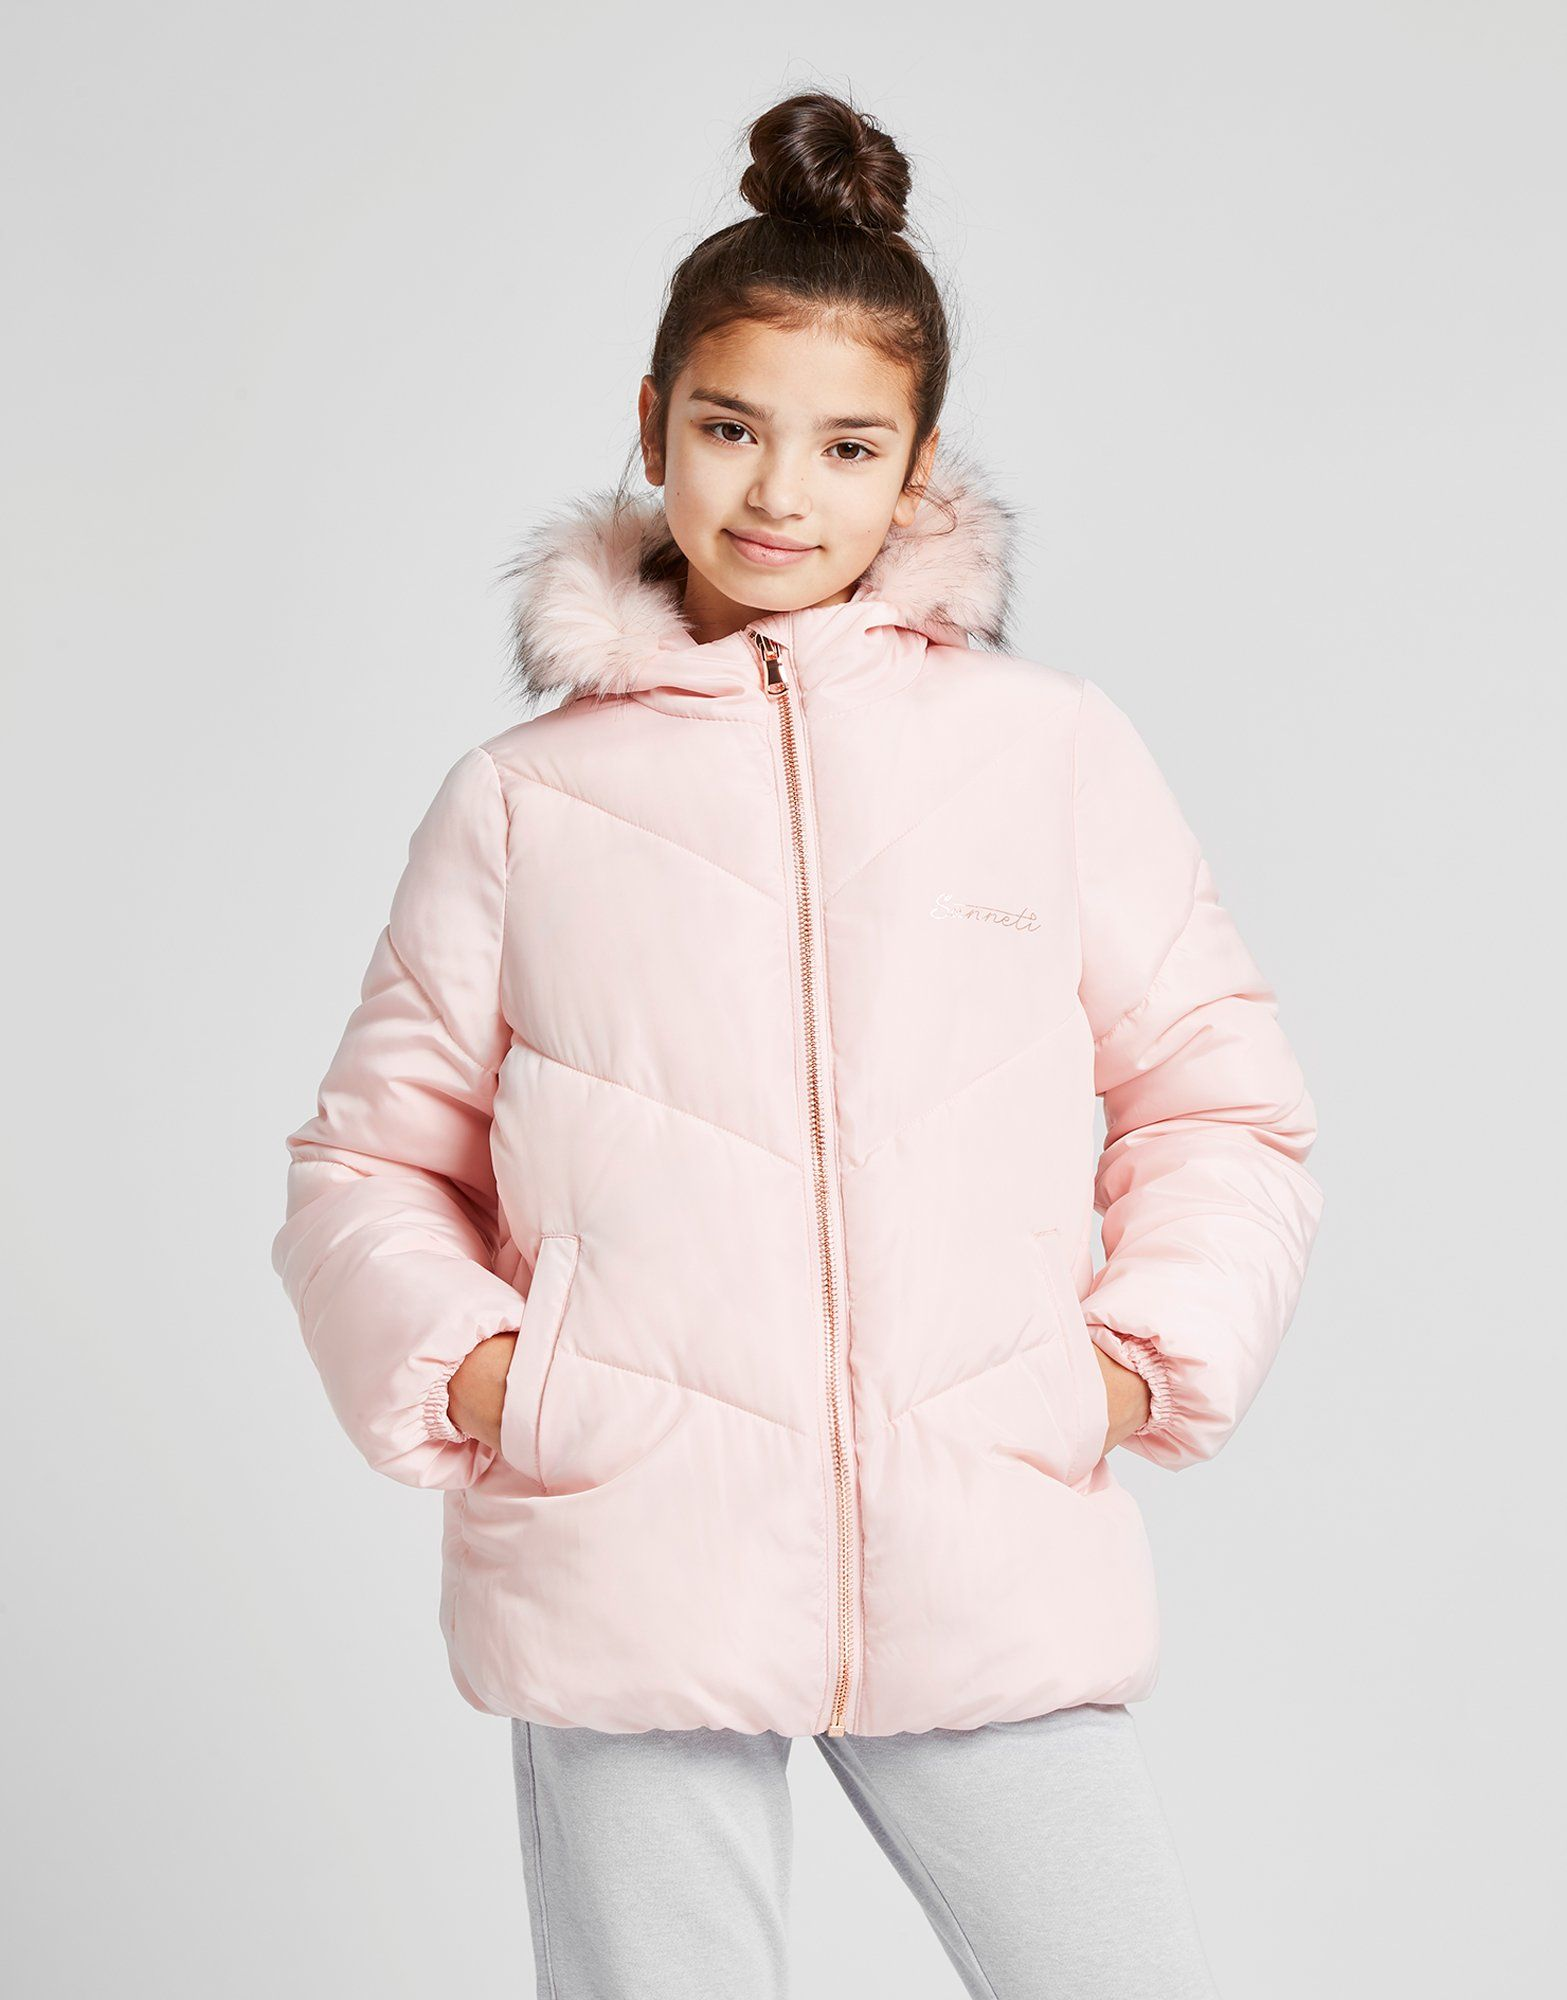 Sonneti Girls' Bubble Jacket Junior